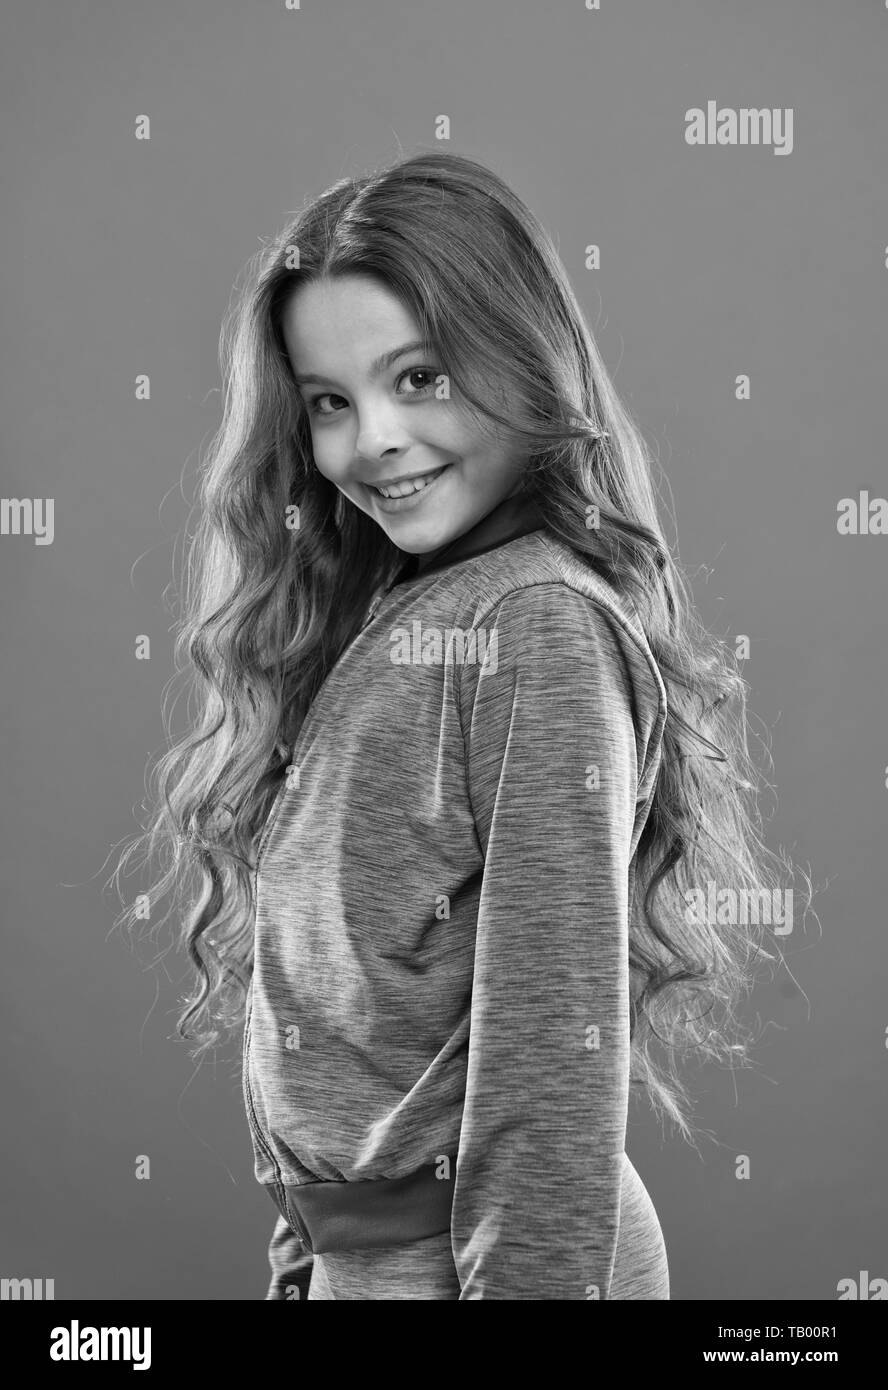 Girl Active Kid With Long Gorgeous Hair Strong And Healthy Hair